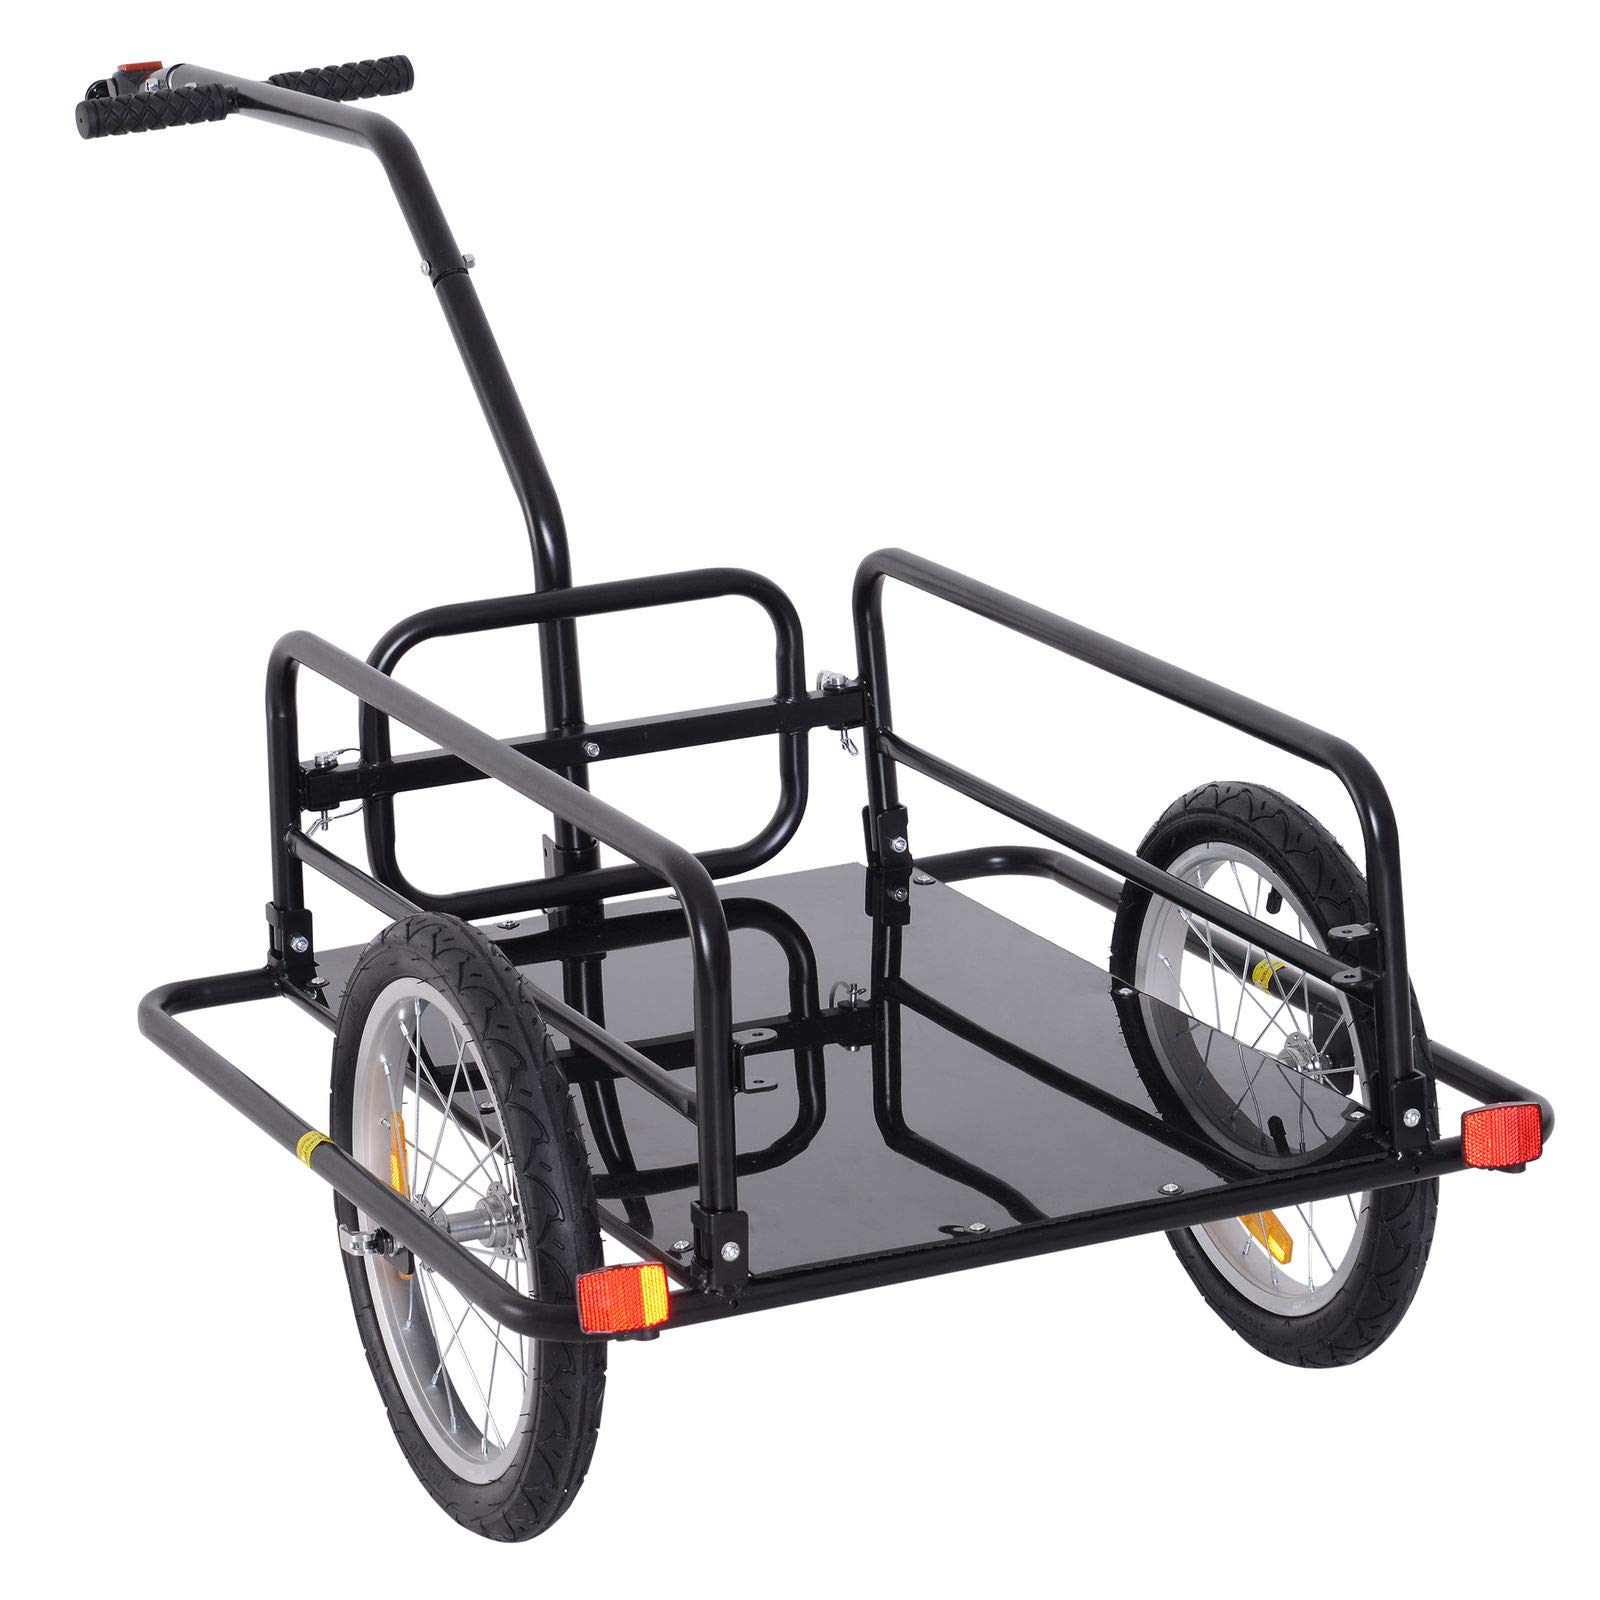 Bike Cargo Storage Cart and Luggage Trailer with Hitch Folding Bicycle Black